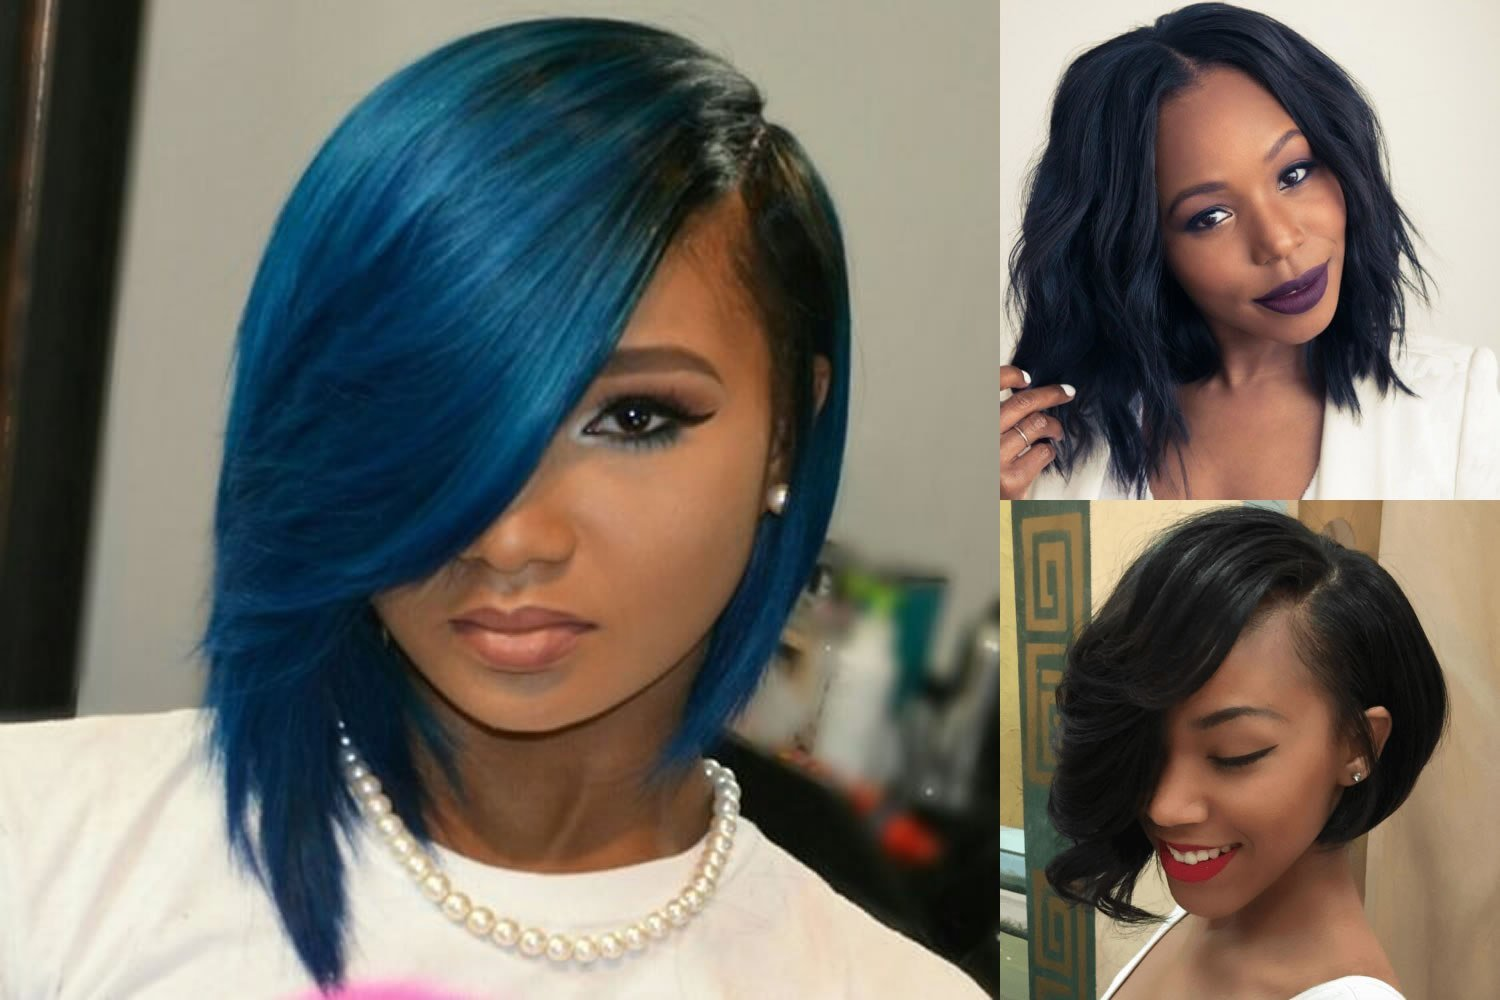 The Best Short Bob Hairstyle For Black Women Hair Color Ideas Pictures